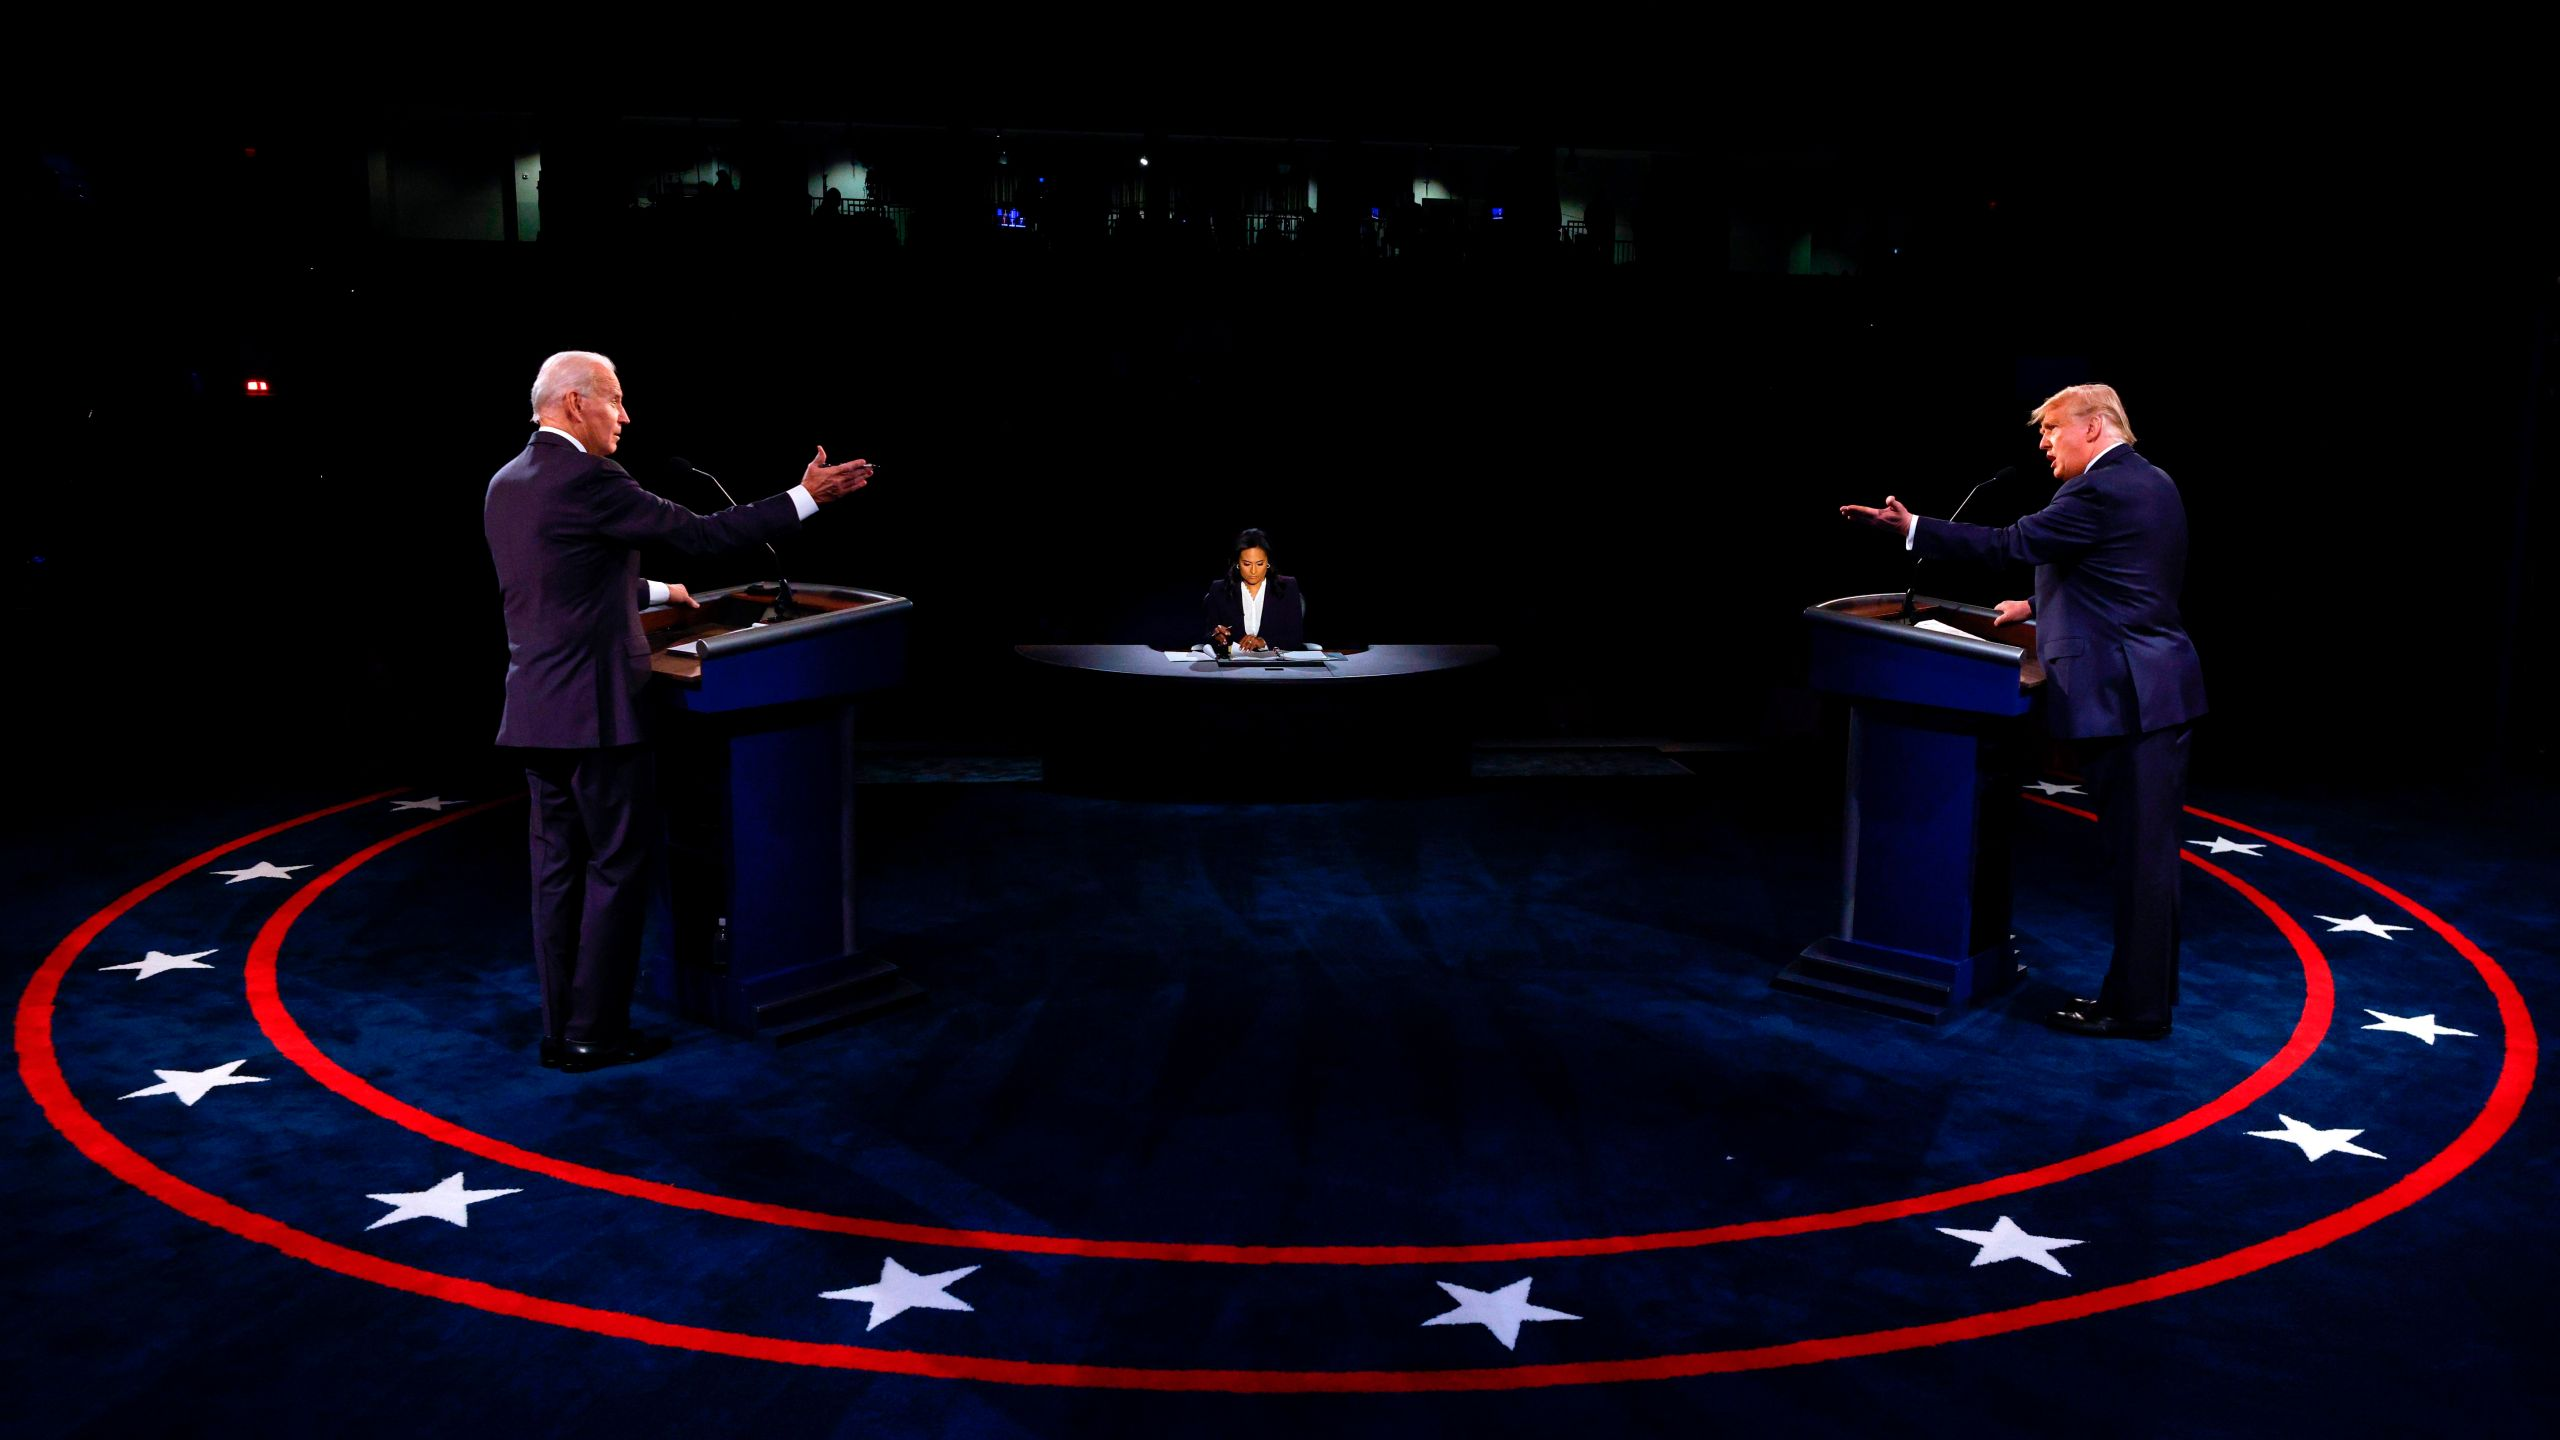 President Donald Trump, Democratic Presidential candidate Joe Biden and moderator, NBC News anchor, Kristen Welker participate in the final presidential debate at Belmont University in Nashville, Tennessee, on Oct. 22, 2020. (JIM BOURG/POOL/AFP via Getty Images)